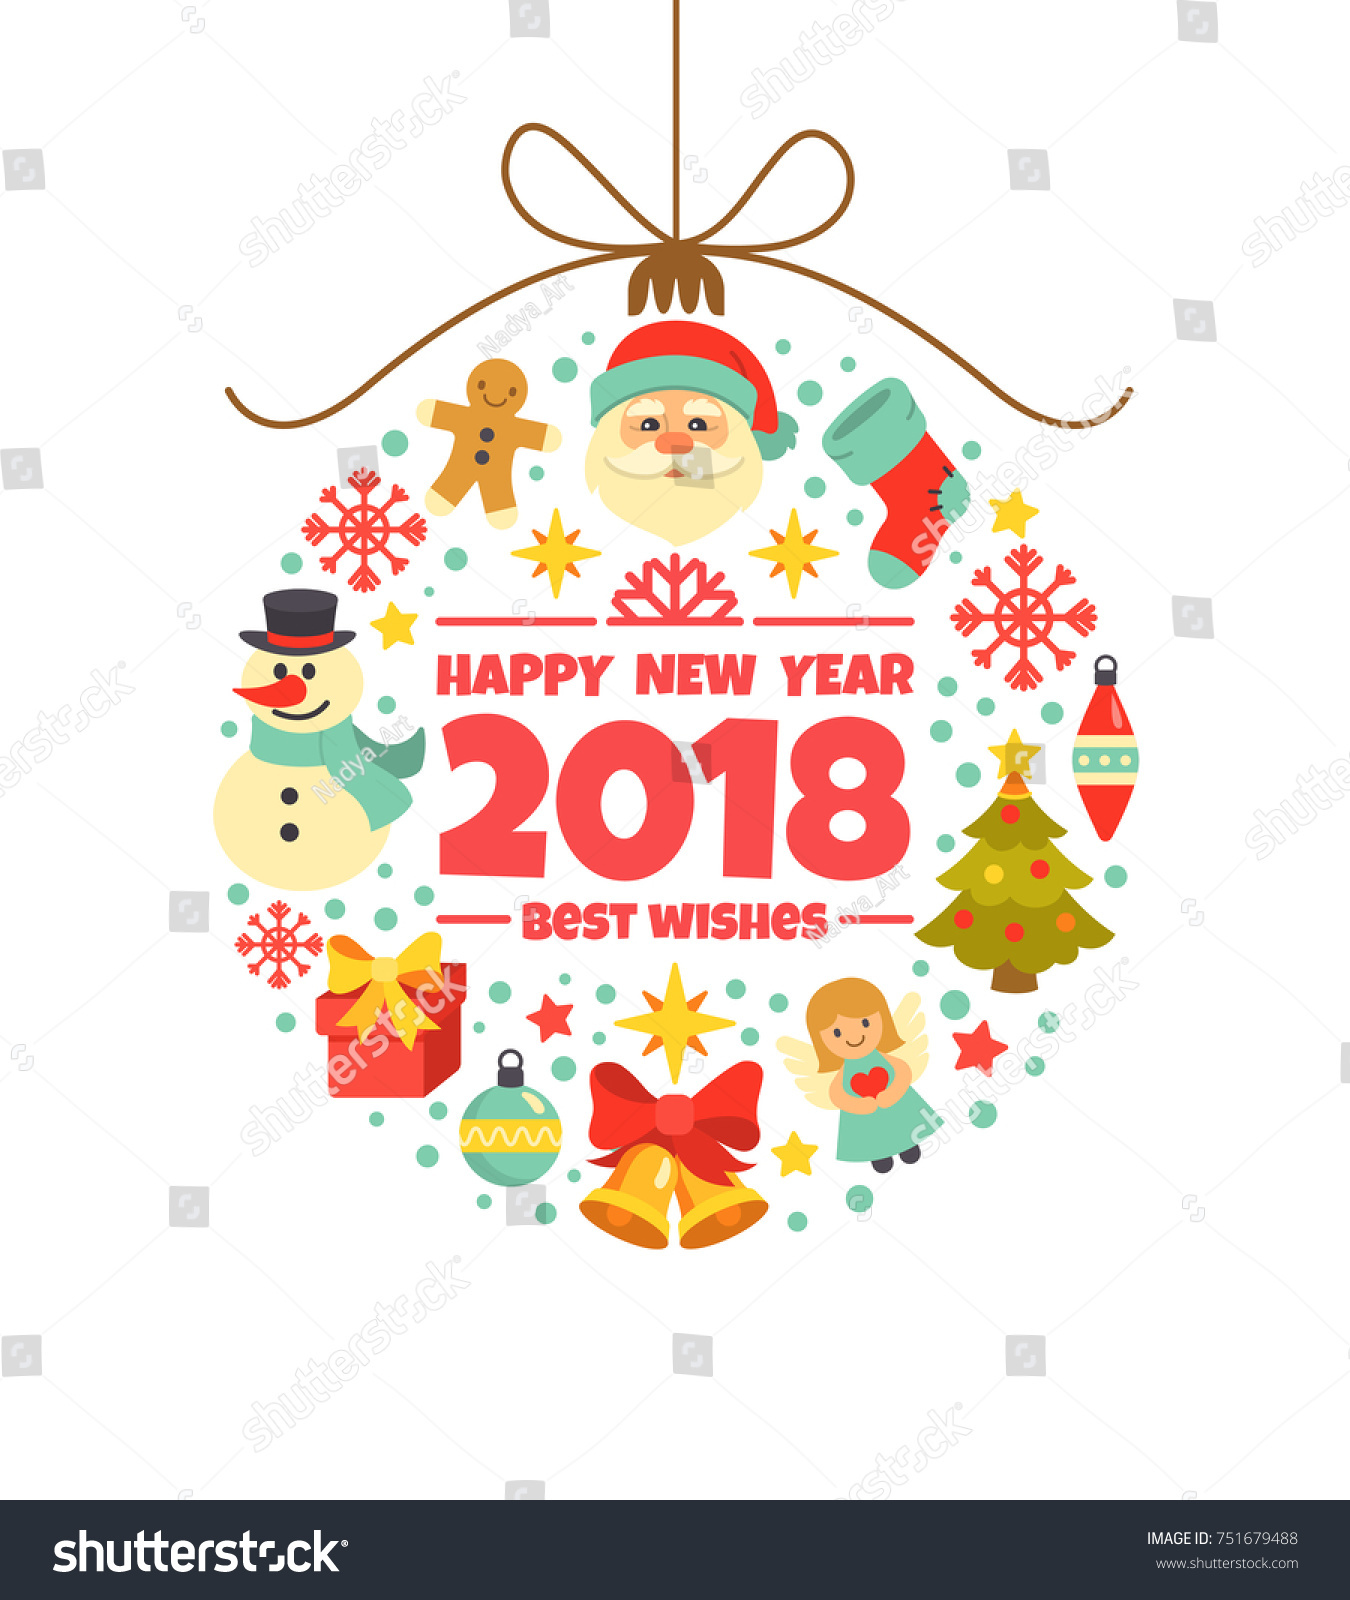 happy new year 2018 greeting card vector illustration with christmas toy consisting of christmas symbols